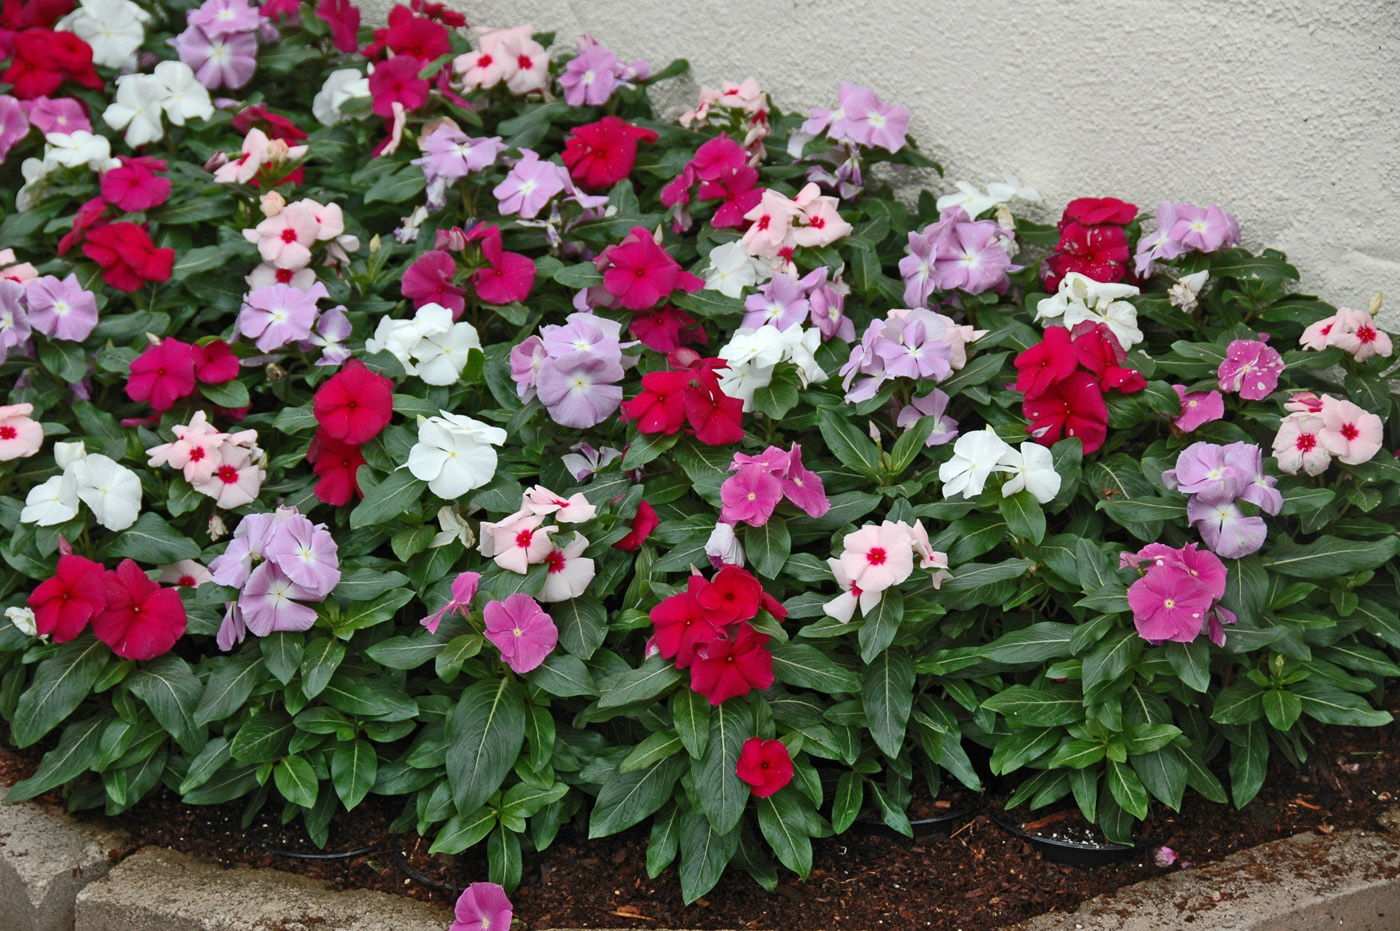 vinca plants Landscape with myrtle, also known as vinca or periwinkle see how to plant this ground cover from the old farmer's almanac.